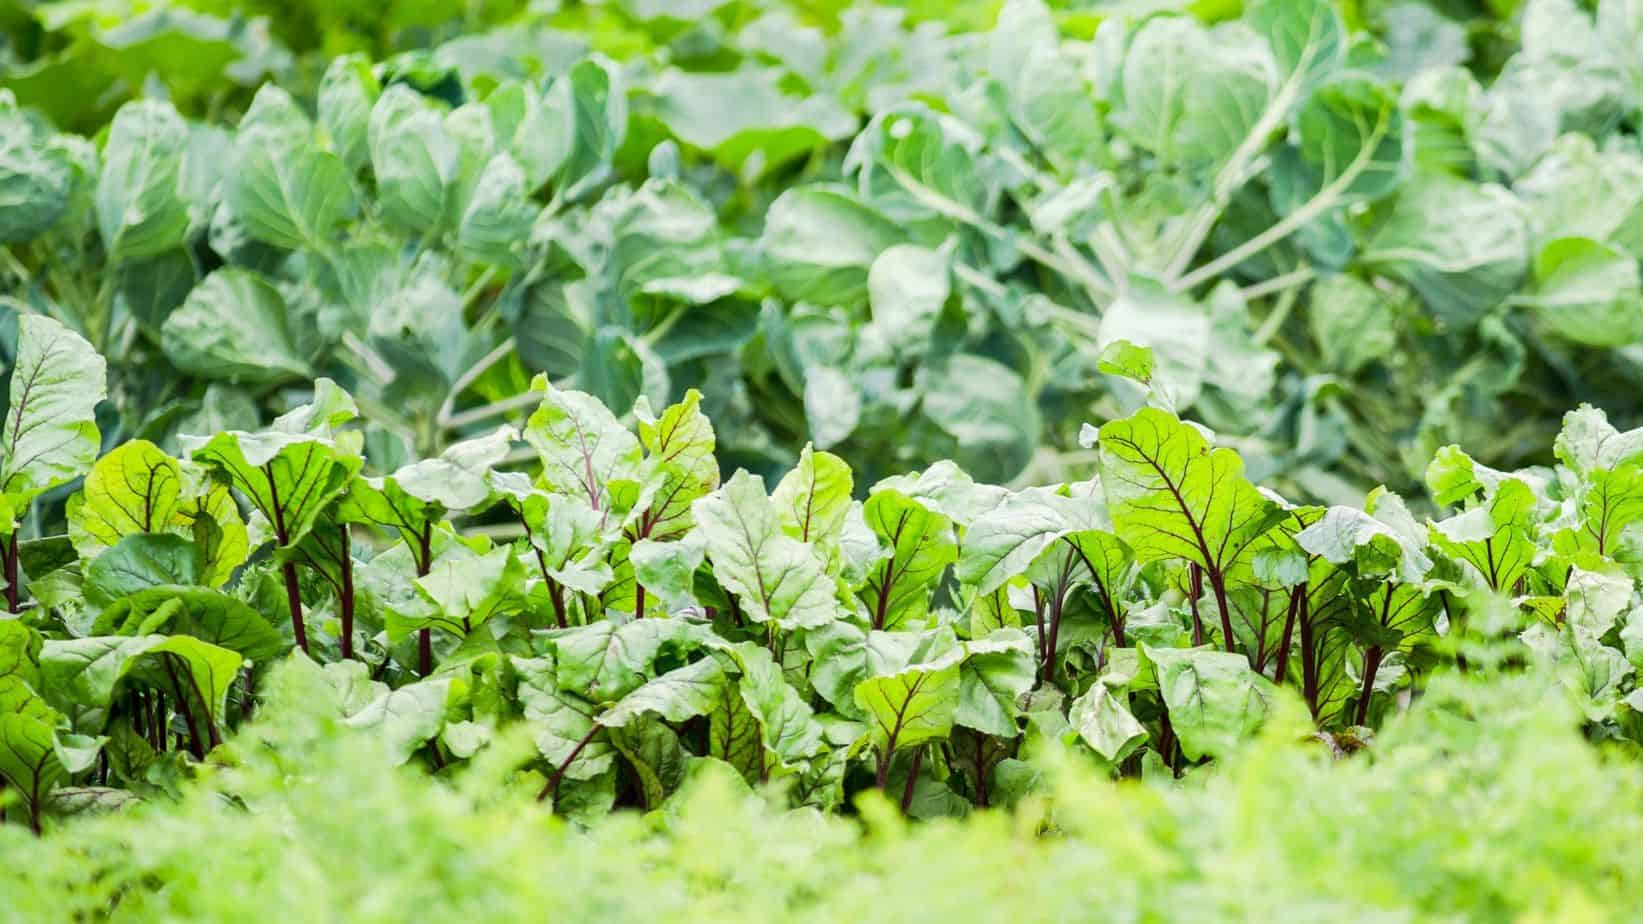 Don't Let Tall Plants Overshadow Your Other Vegetables